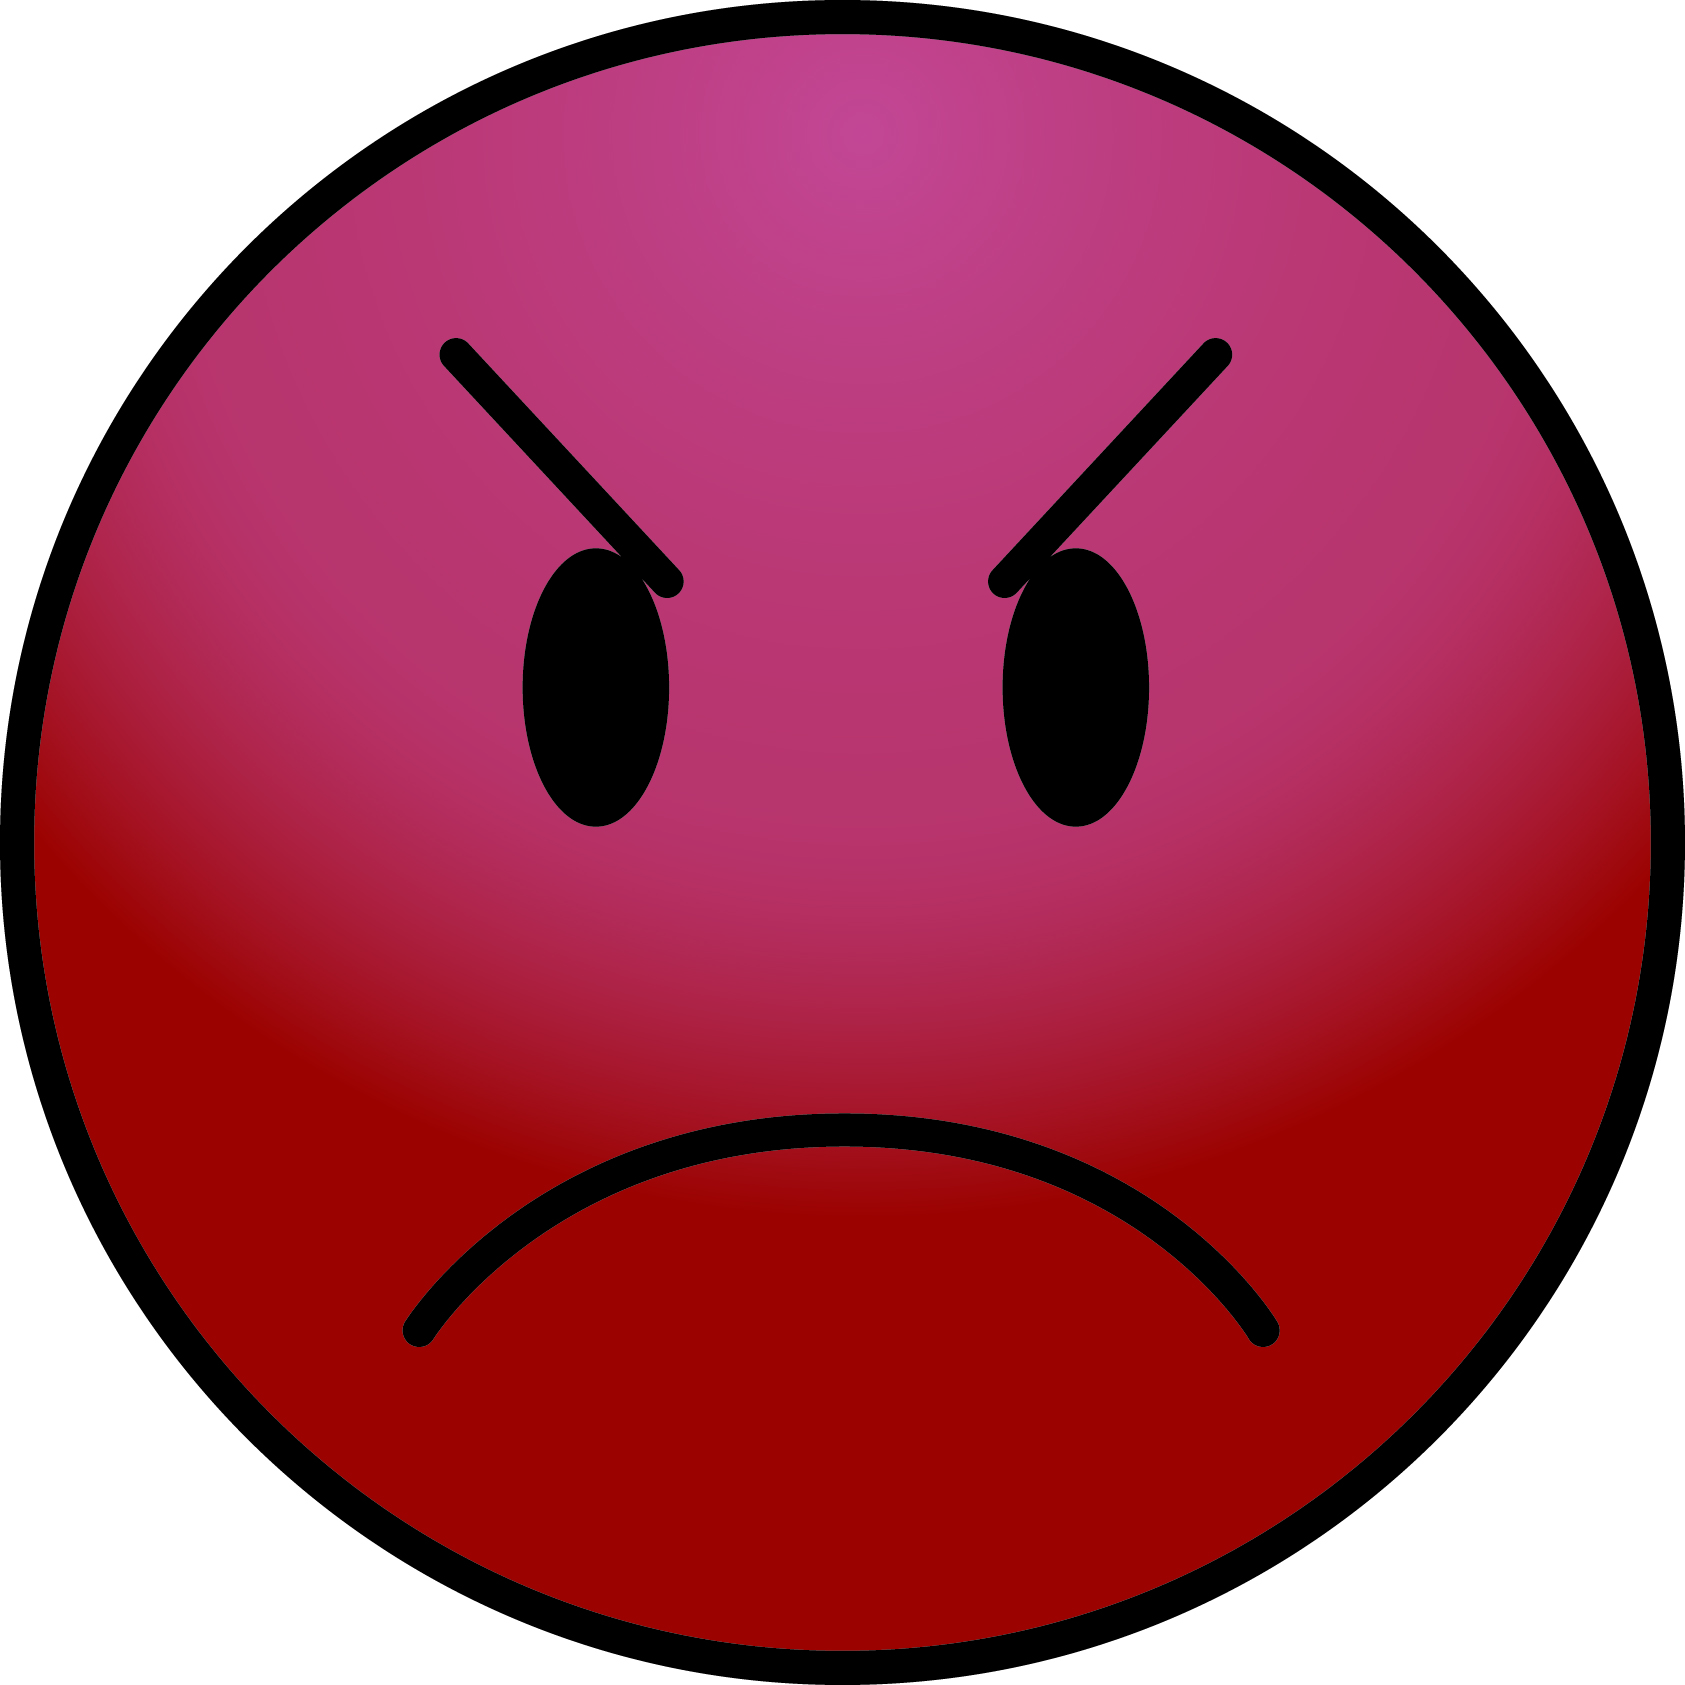 Red Angry Emoticon - ClipArt Best